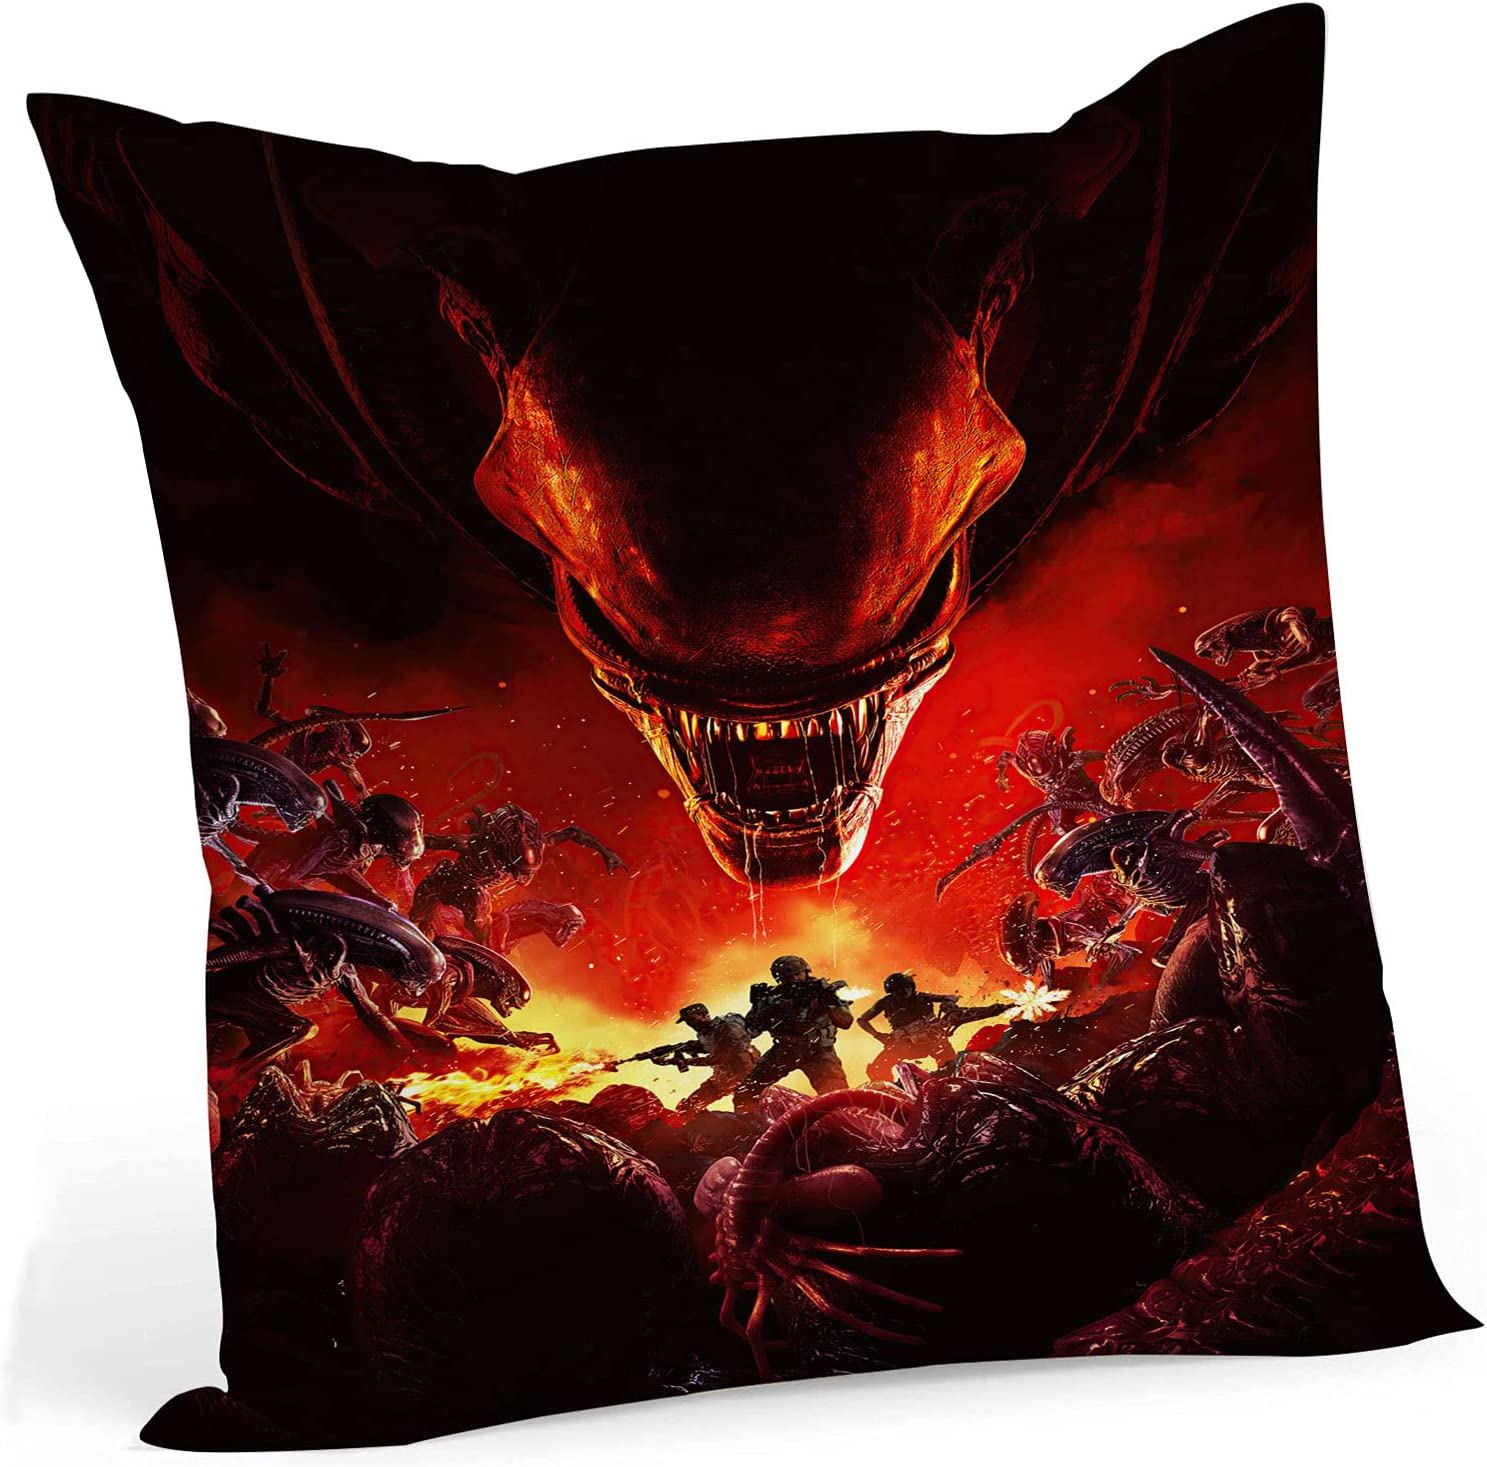 fucyBu Star Black Moon A Soldering surprise price is realized Alien Fabric Throw Pillow Cotton Inserts